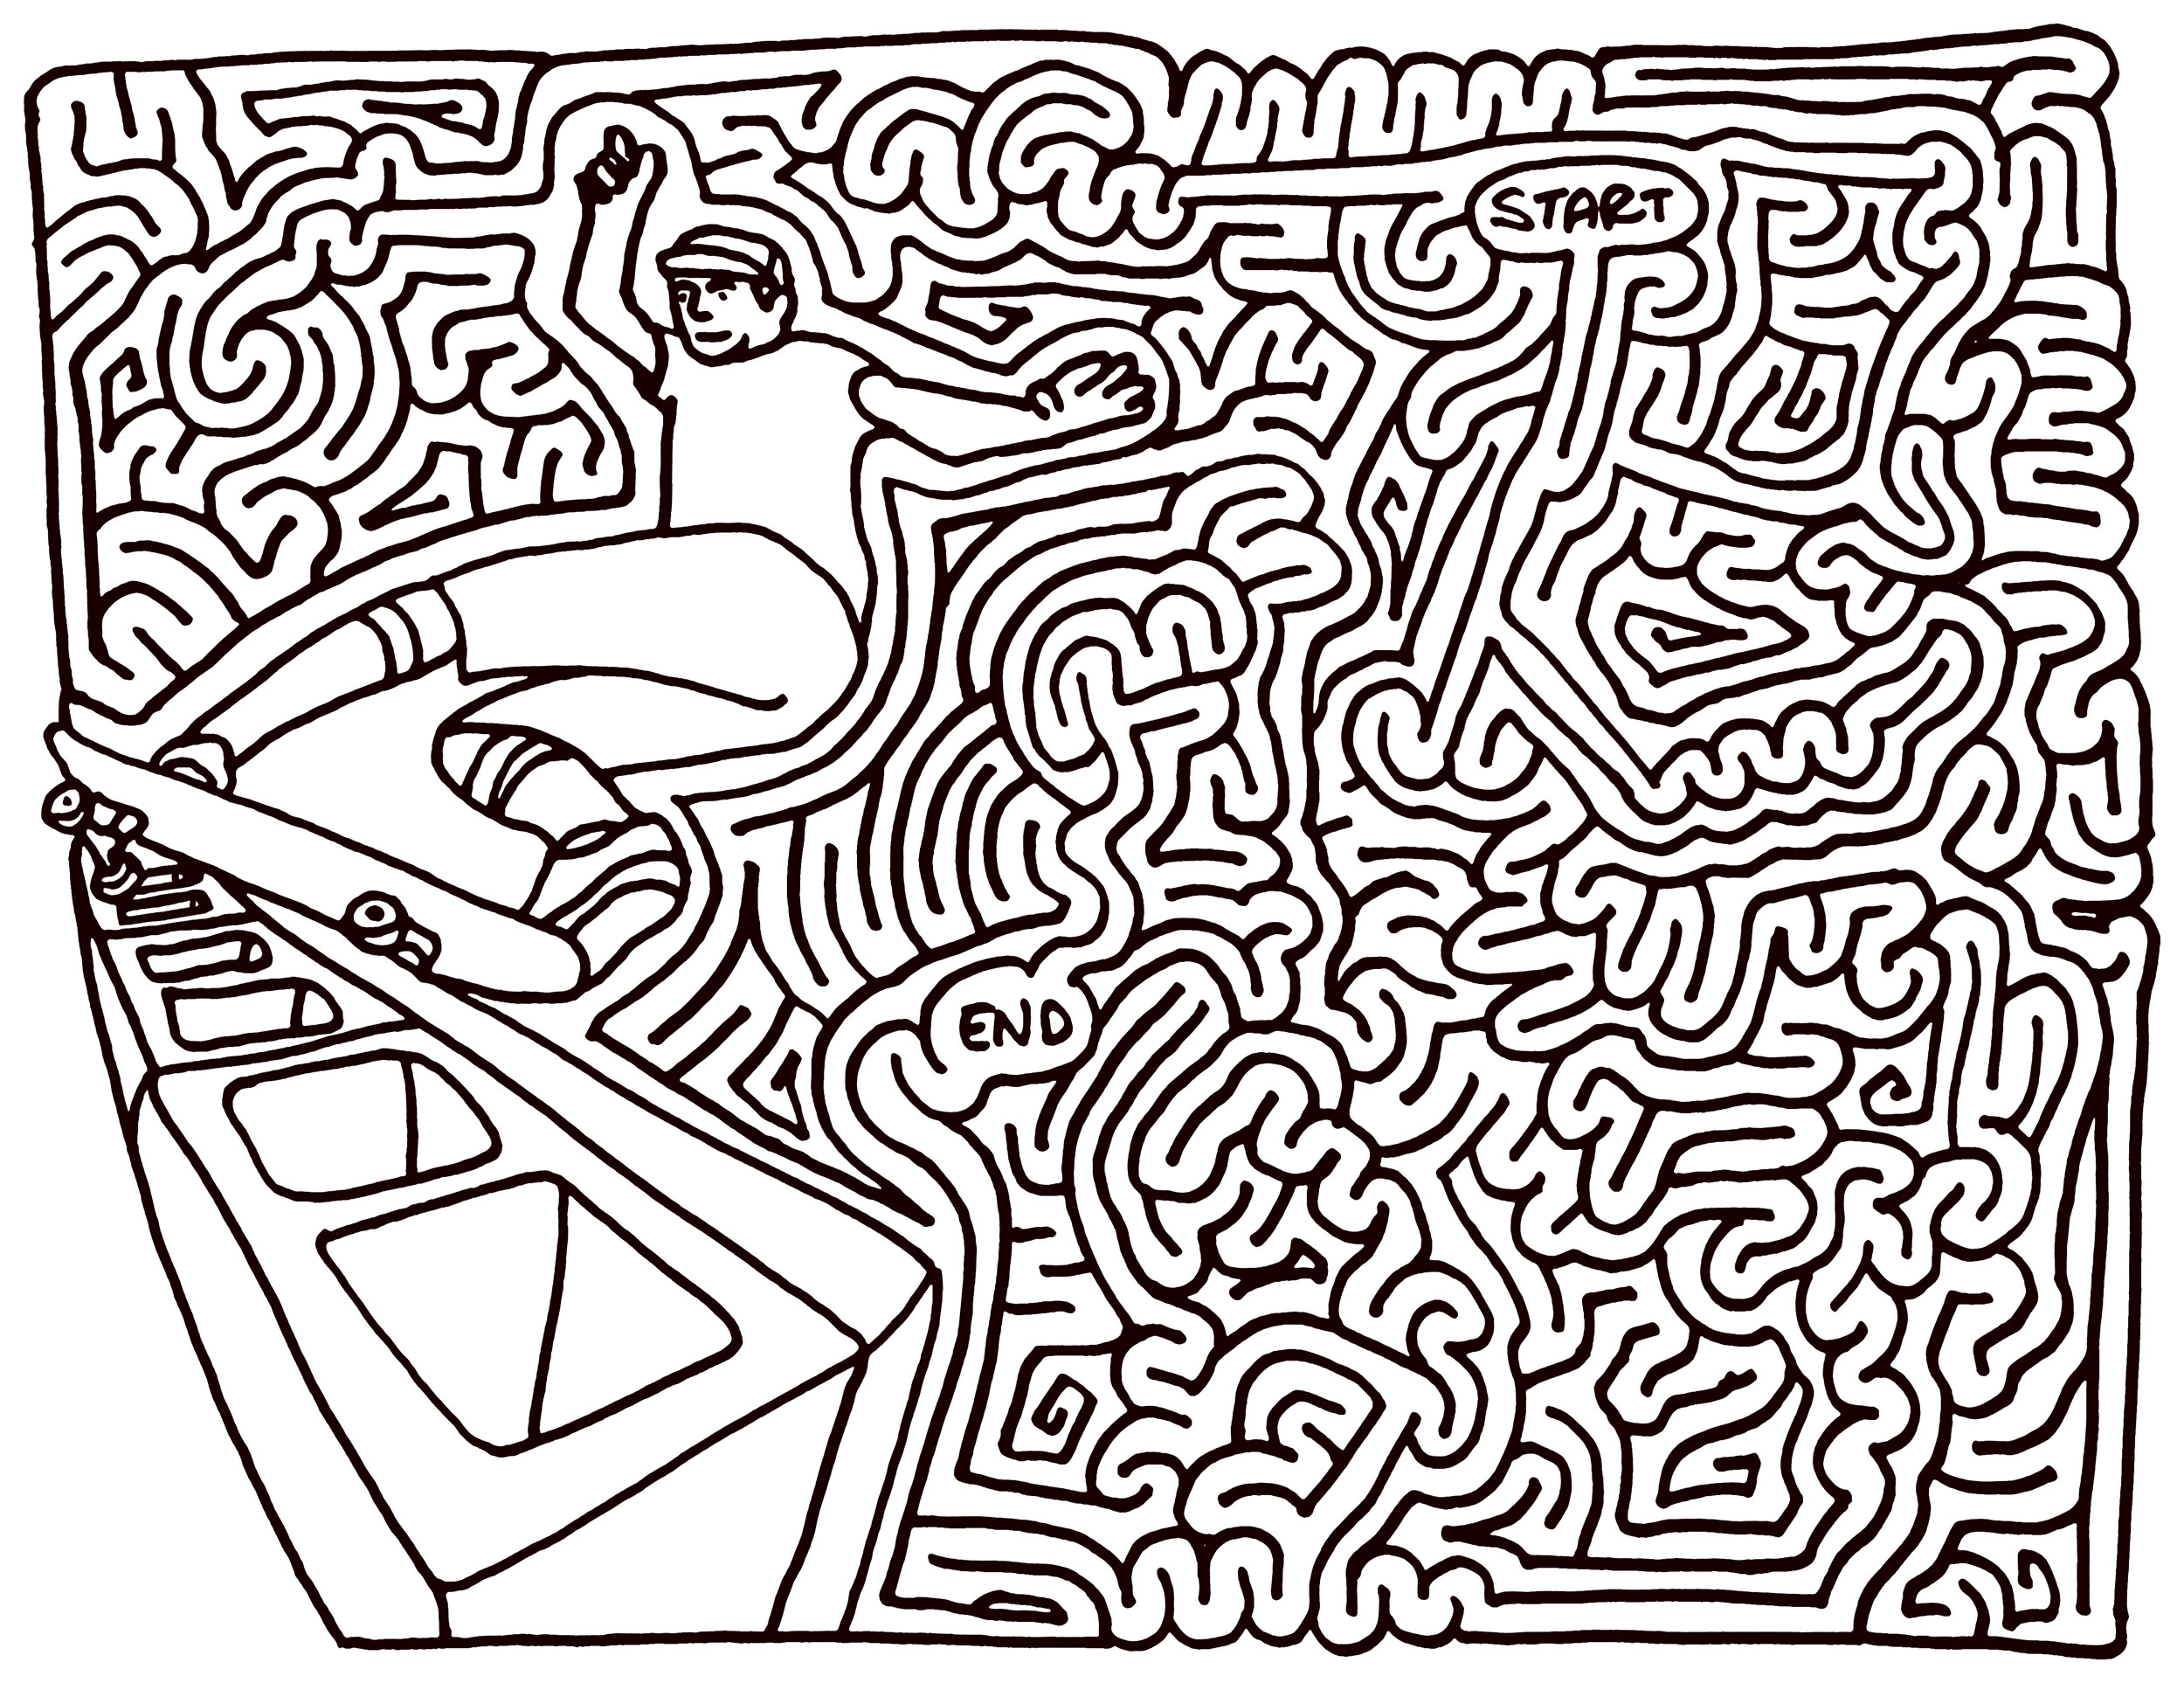 image regarding Difficult Mazes Printable named Demanding Mazes - Simplest Coloring Web pages For Children